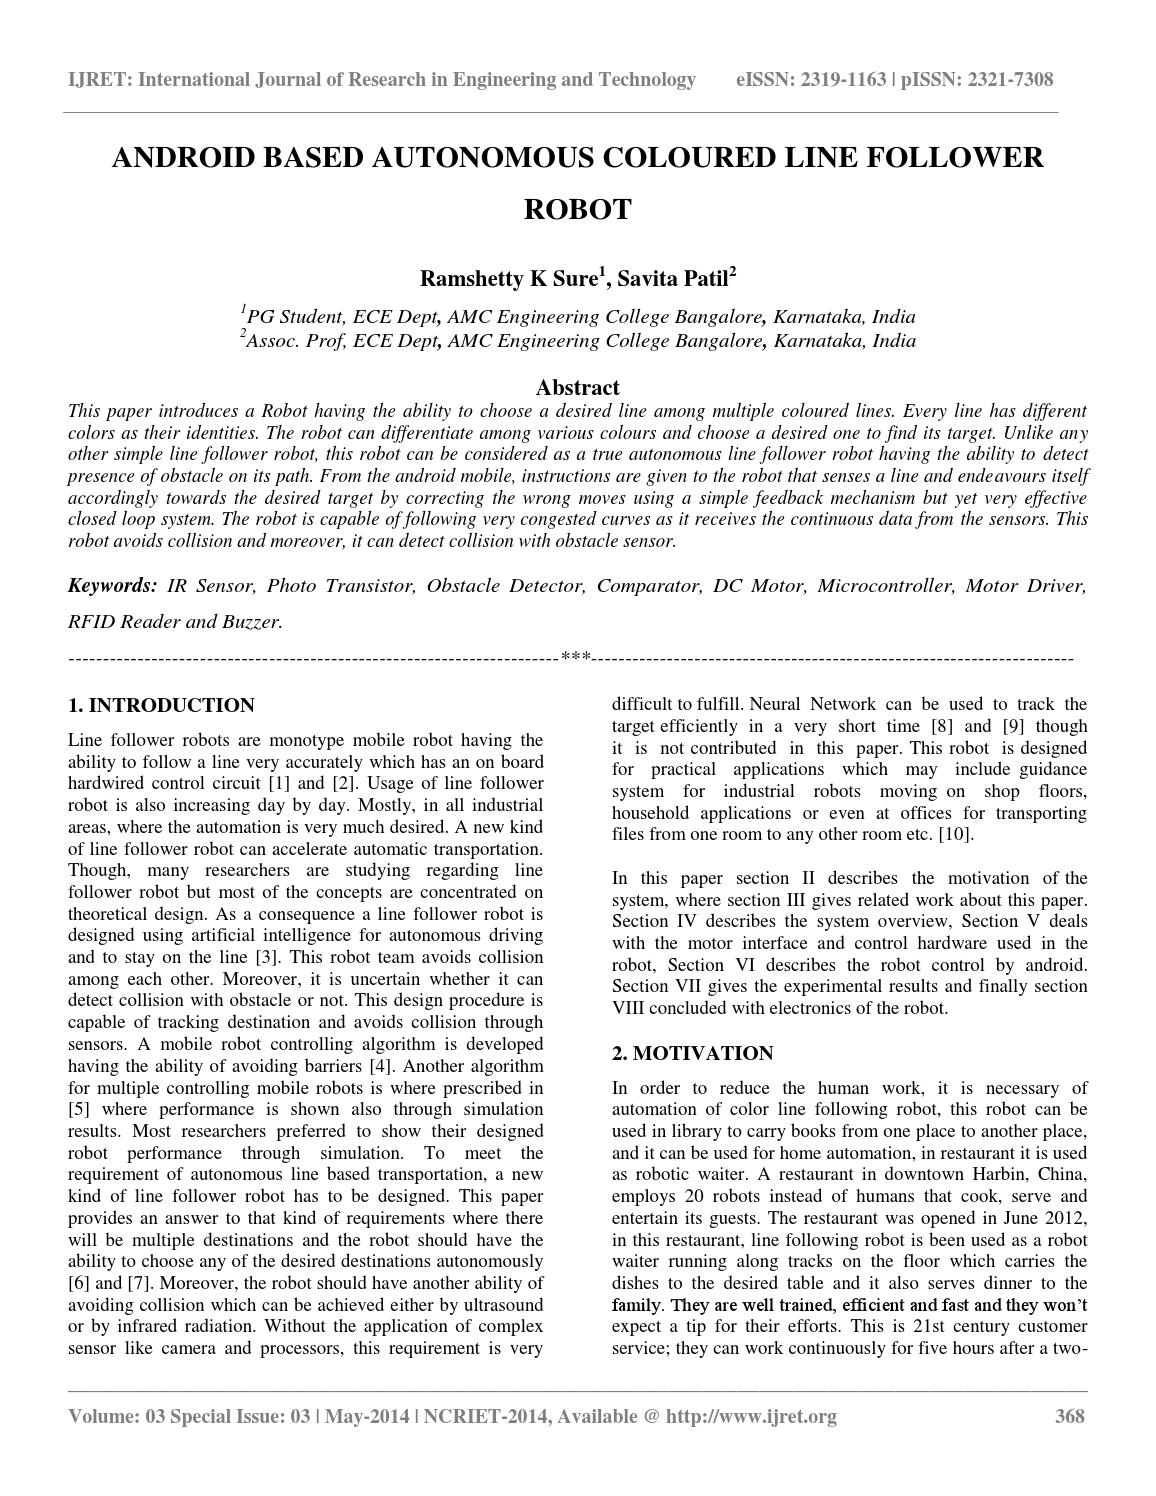 Android Based Autonomous Coloured Line Follower Robot By Esat Following Without Microcontroller Journals Issuu